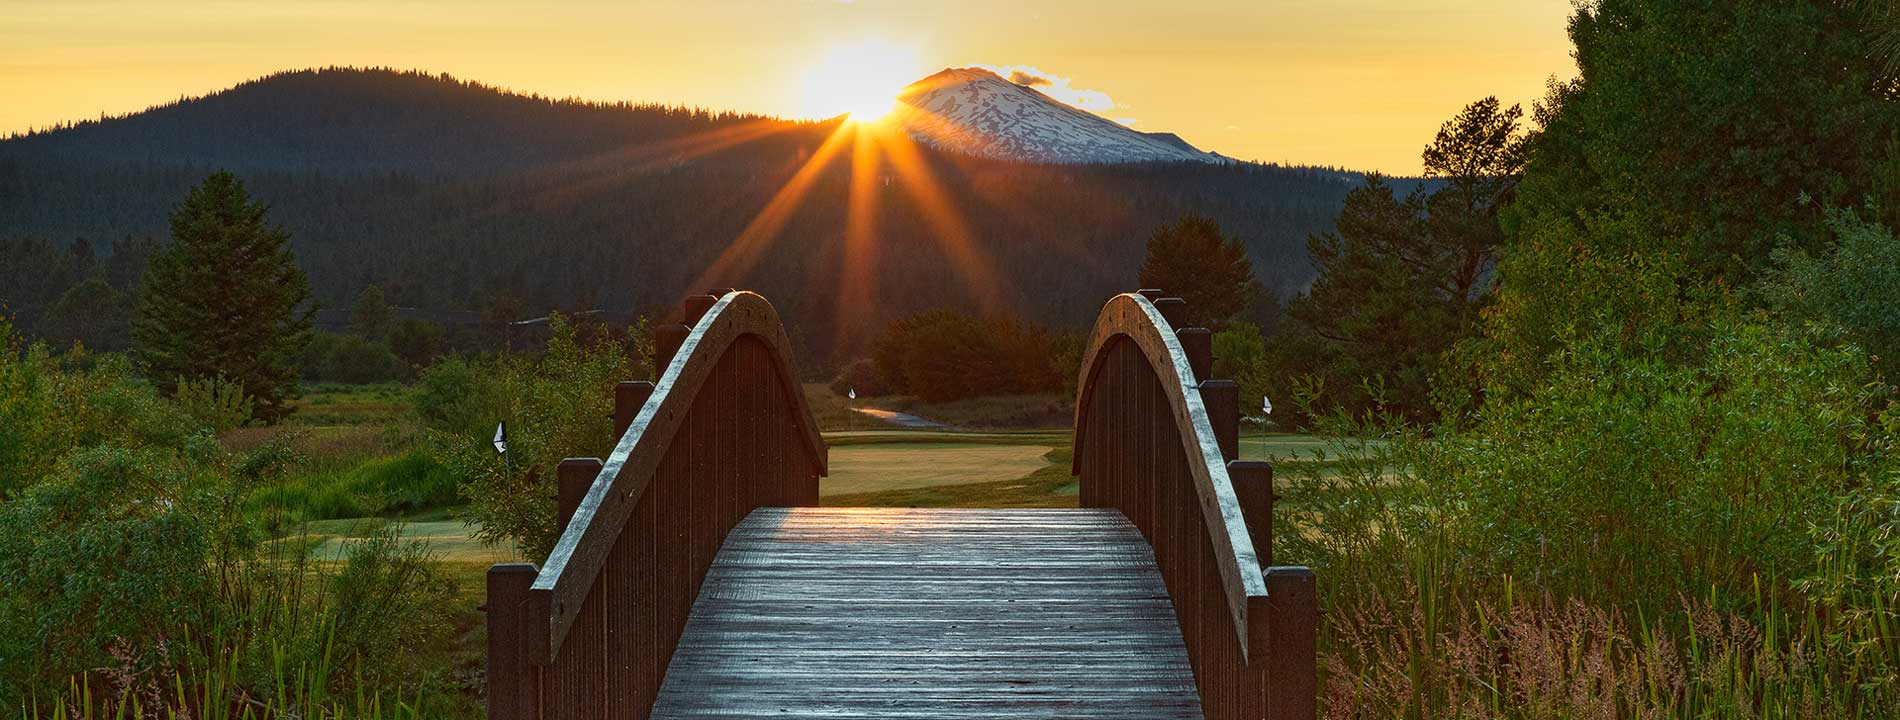 In the winter, it's a ski haven. Come summer, golf takes center stage. Sunriver has become a premier central Oregon resort playground.